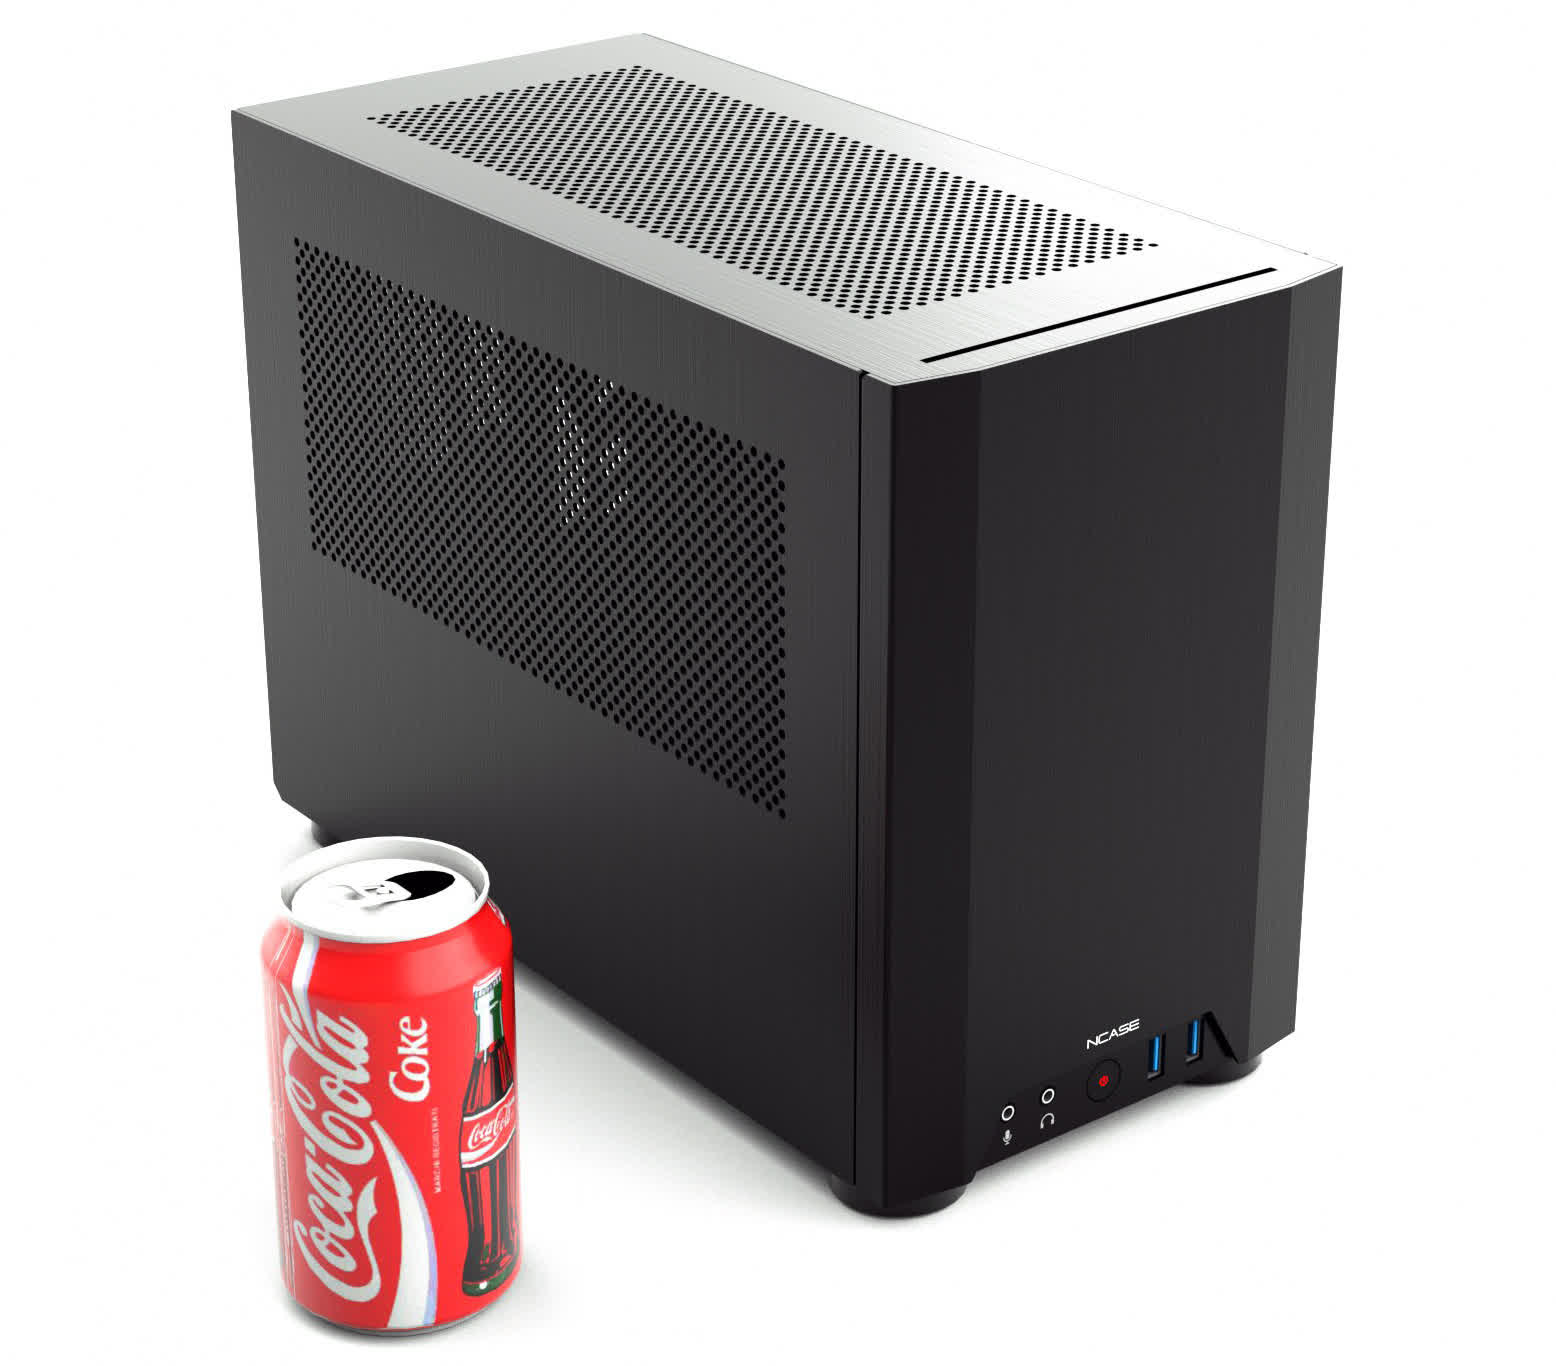 Ncase discontinues its excellent M1 small form factor PC chassis after eight years